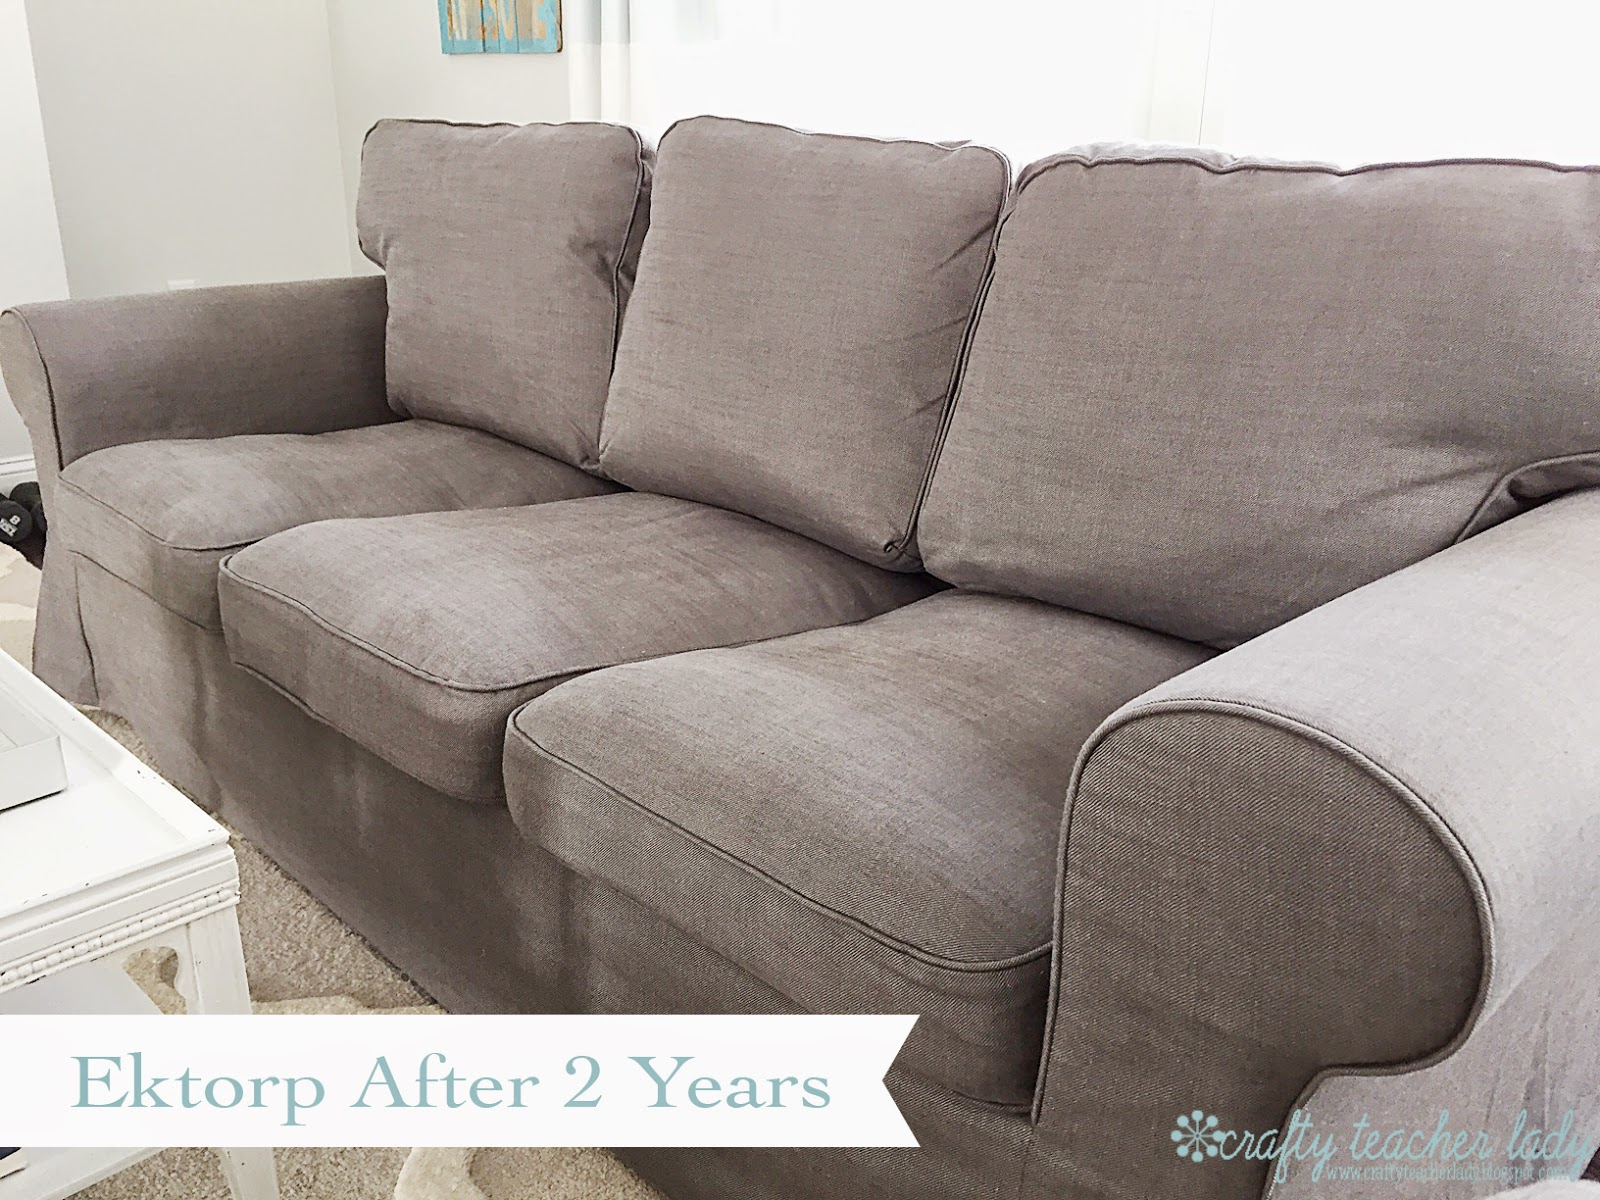 Restuff Couch Pillows | Sofa Pillow Stuffing | Restuffing Couch Cushions